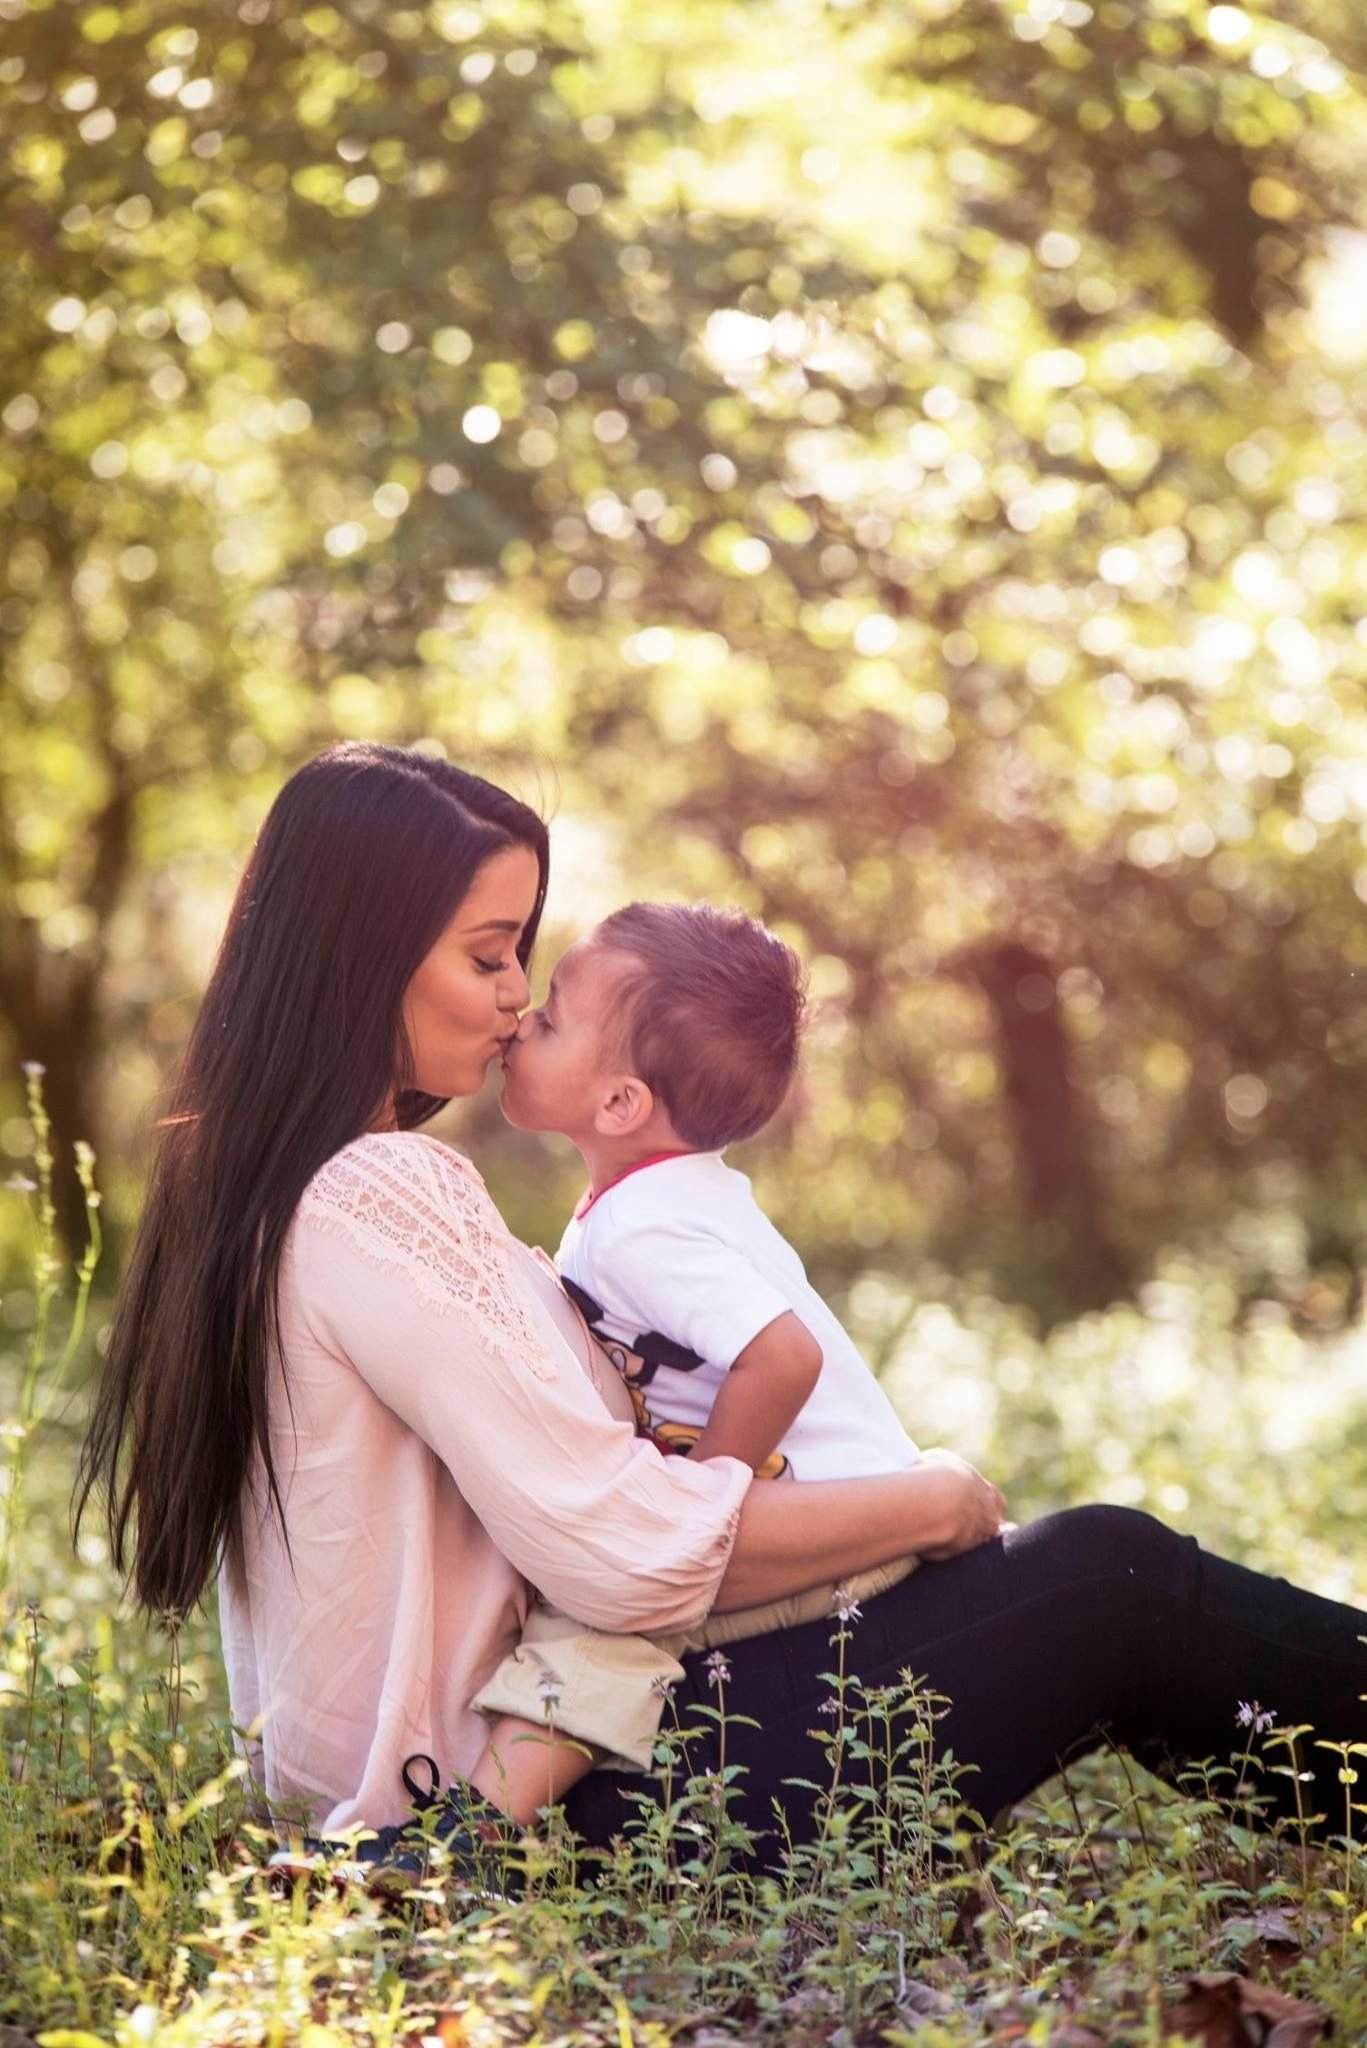 10 Fashionable Mother And Son Picture Ideas mother and son photos second birthday pictures first birthday 2020